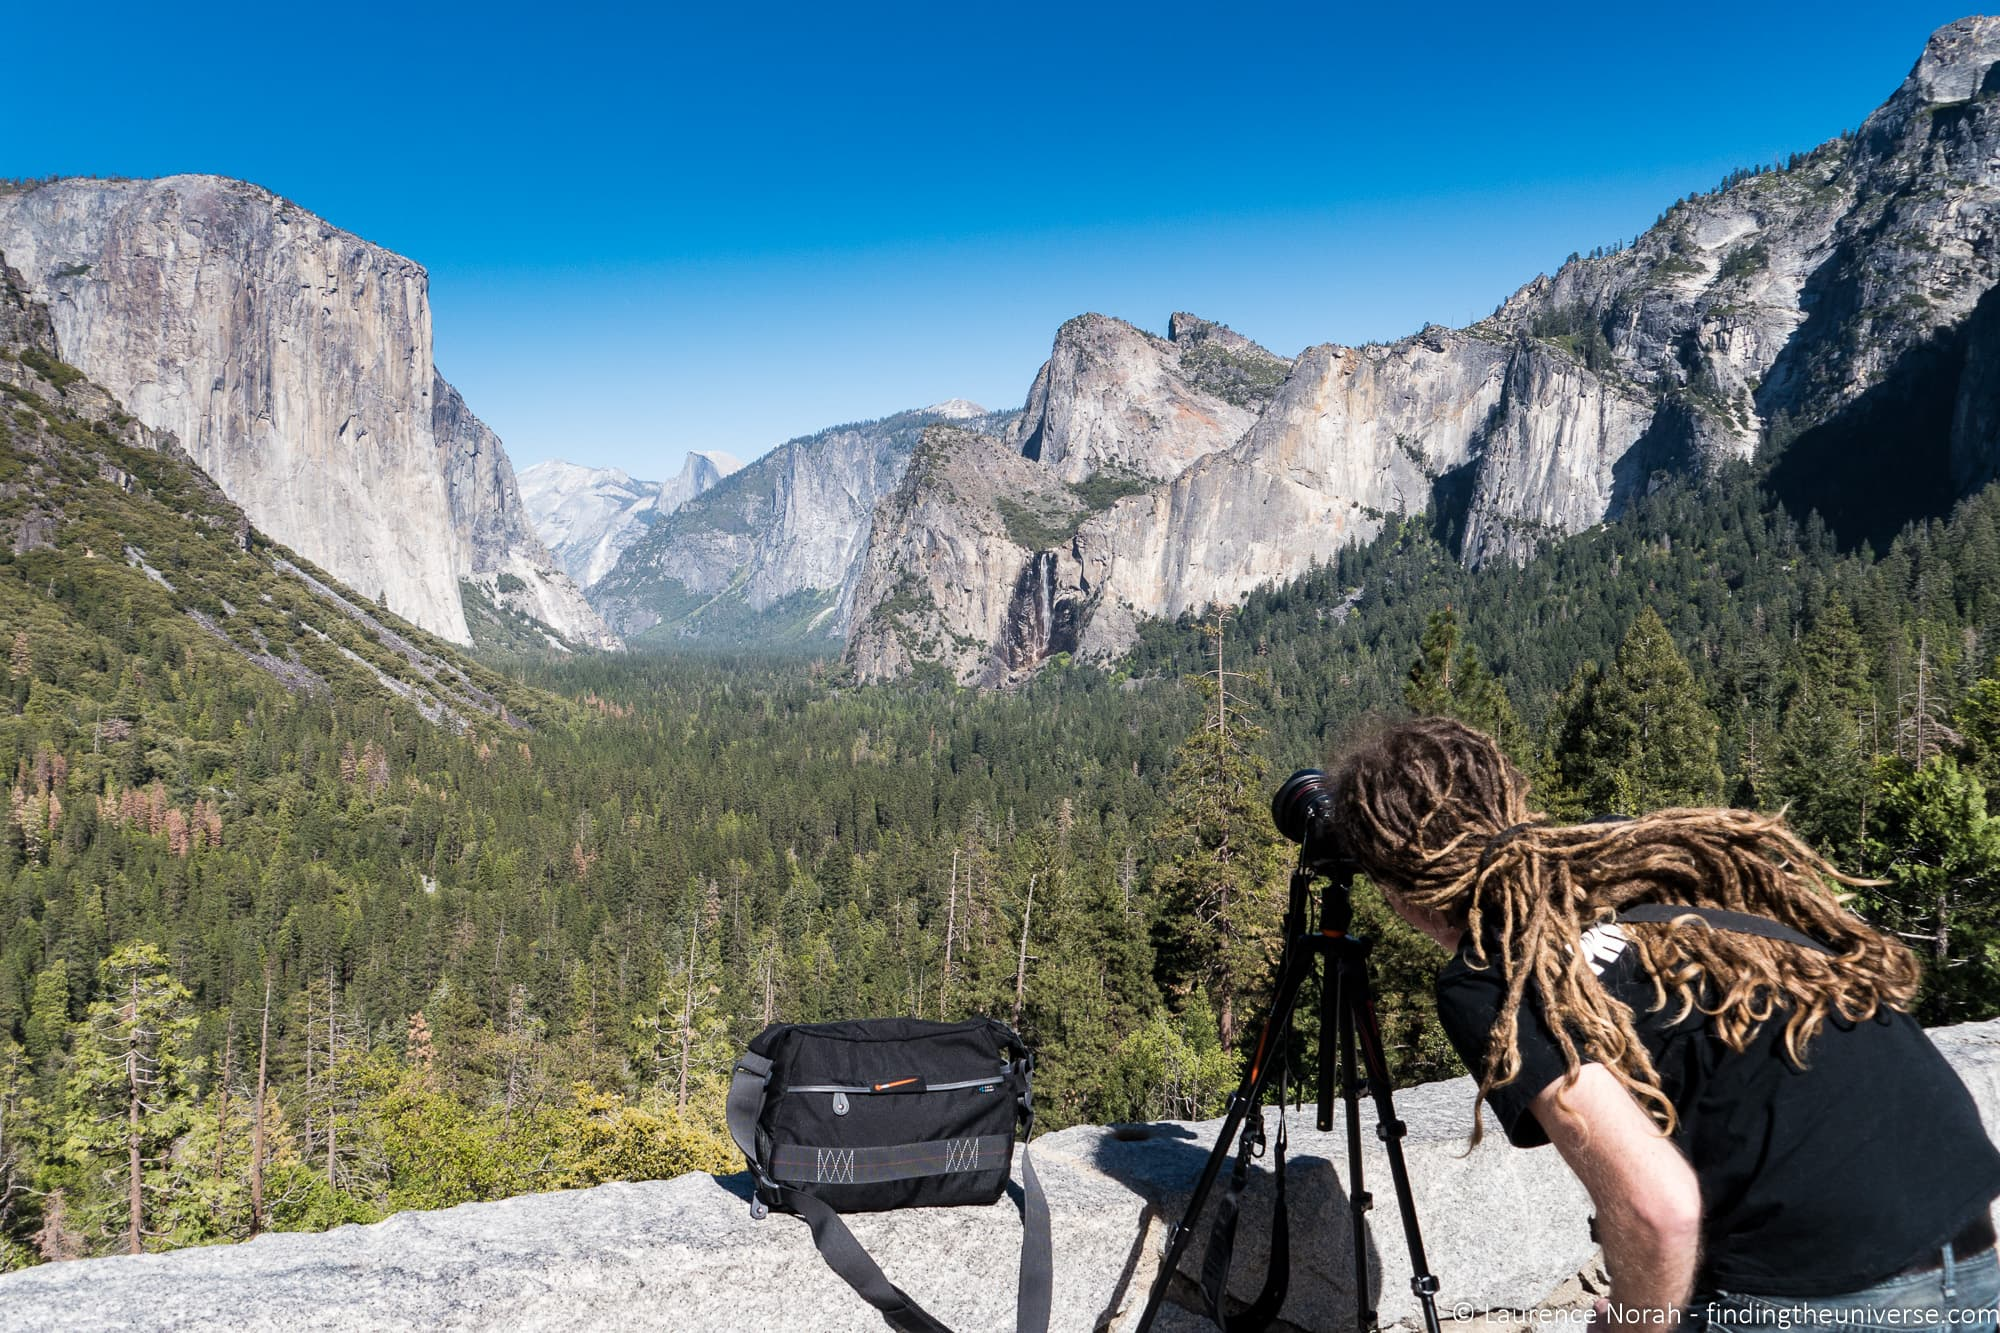 Laptop for photo editing guide - Laurence shooting Yosemite valley with tripod